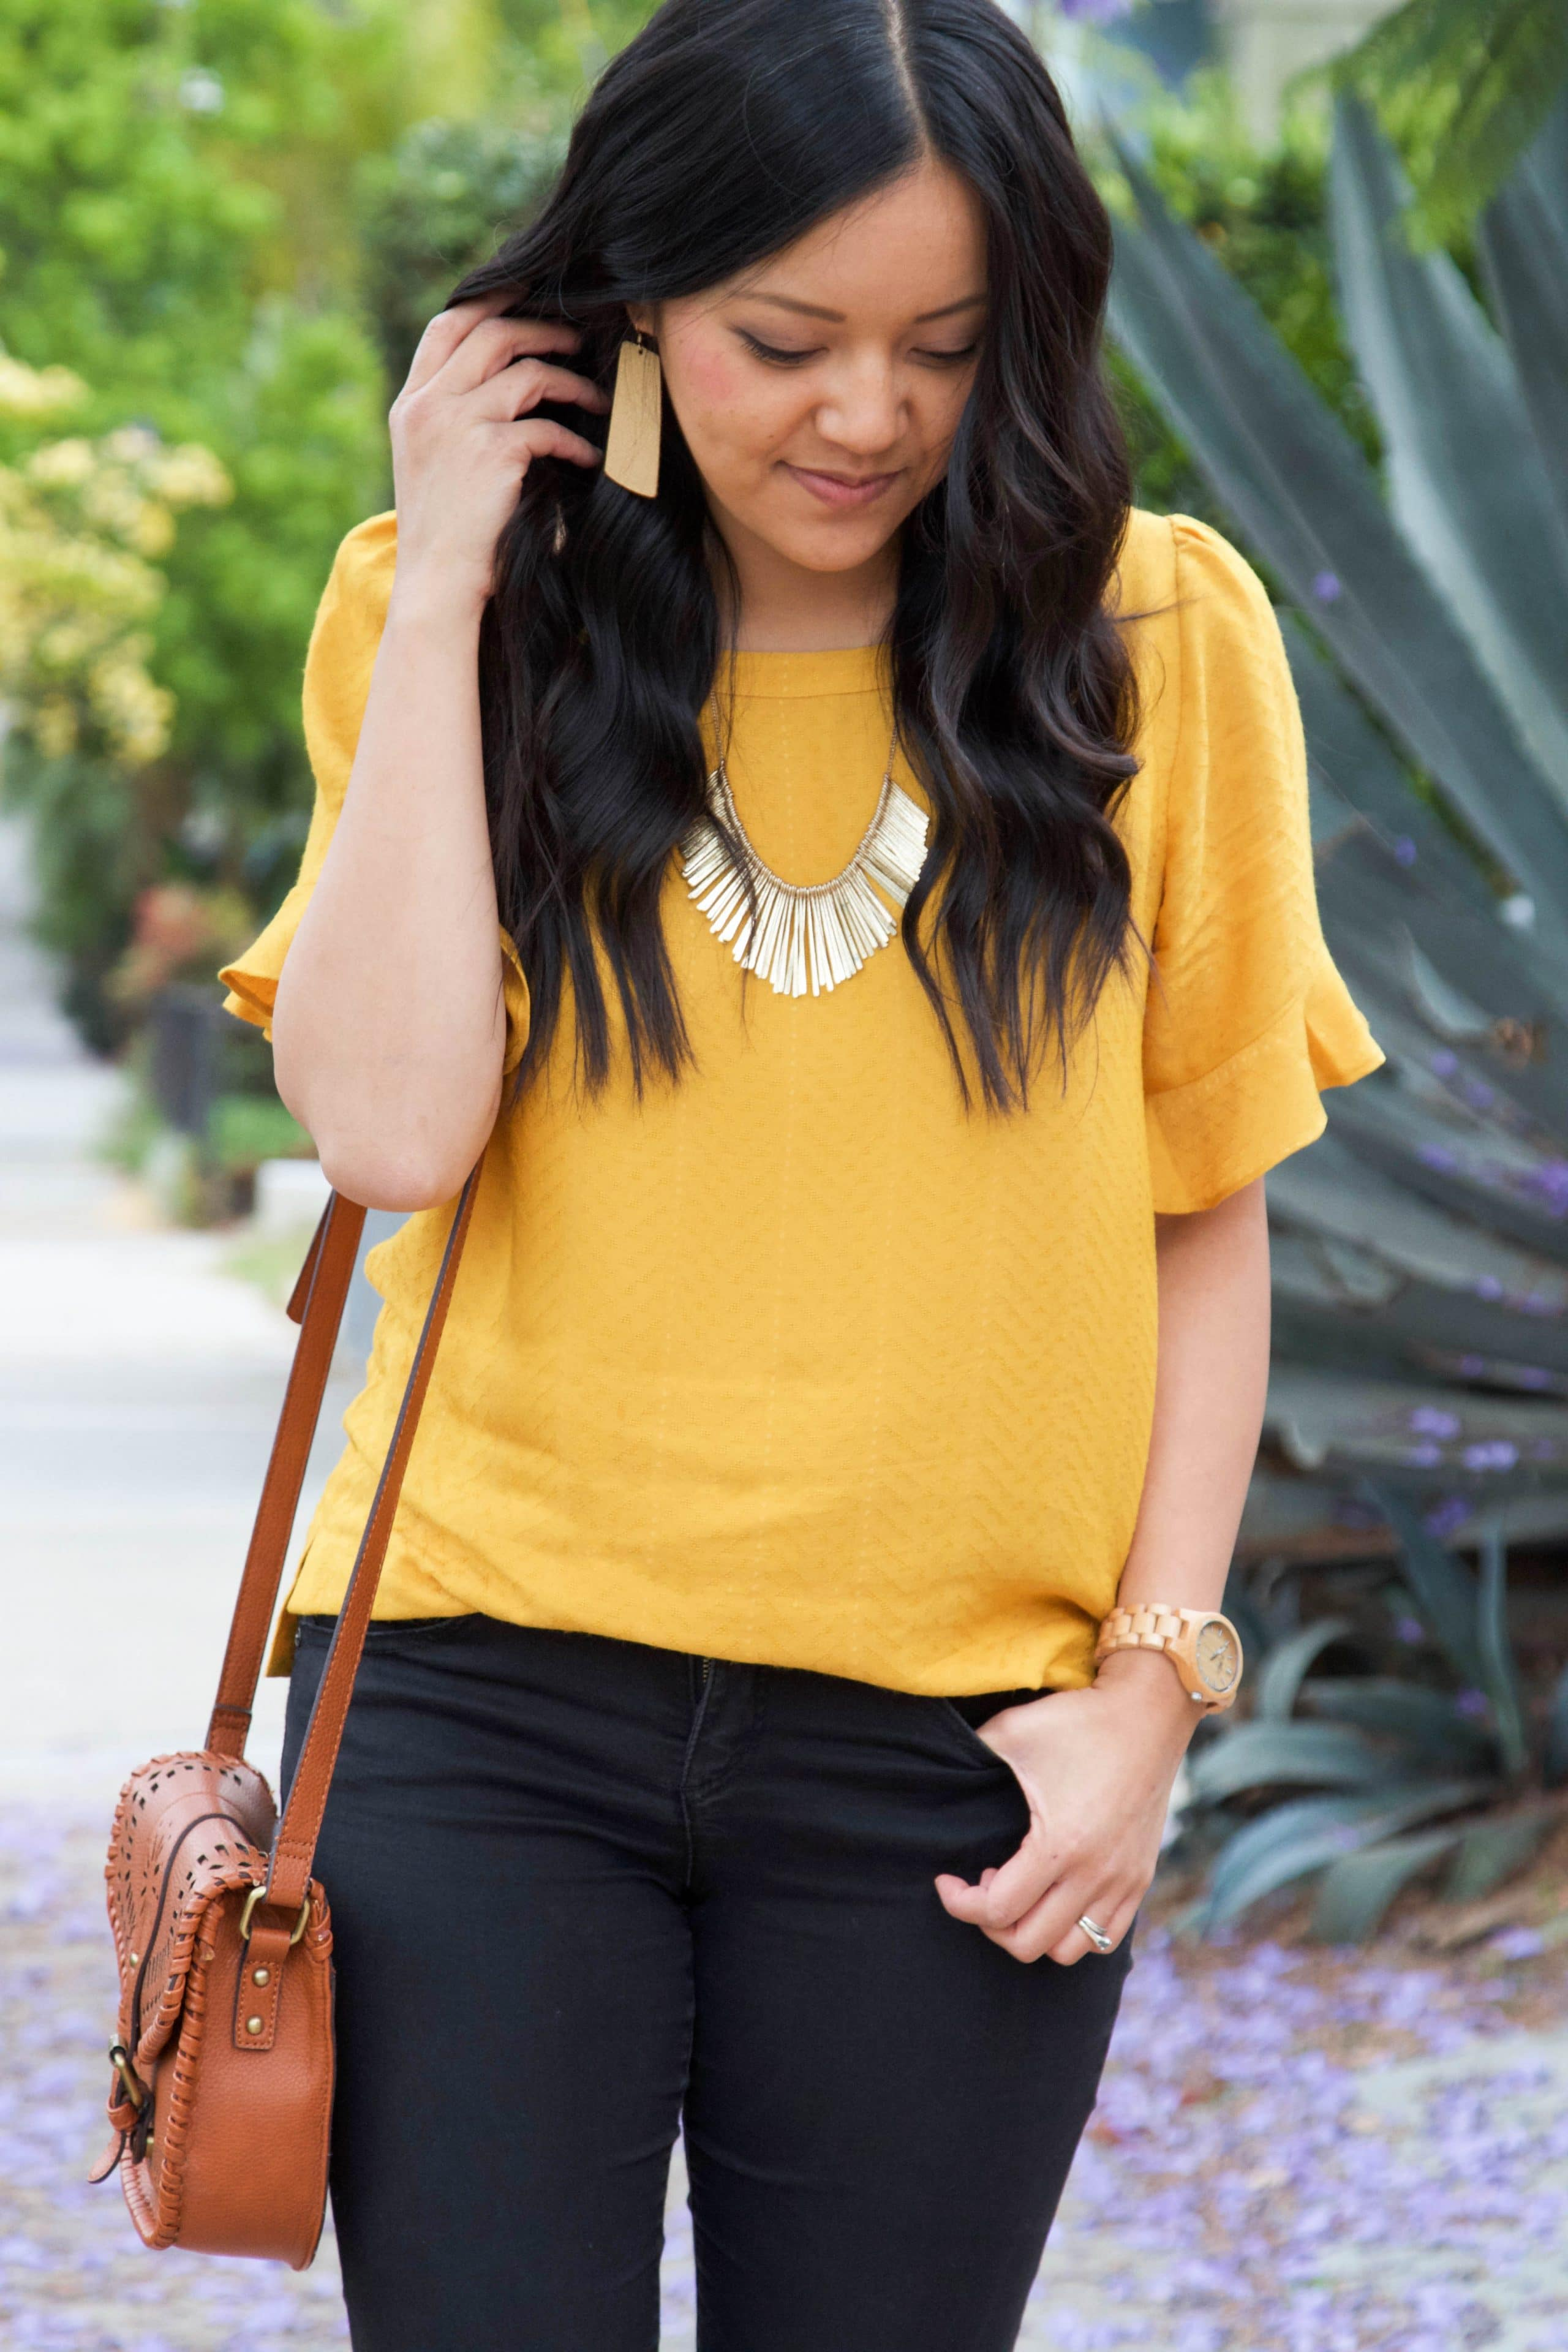 Marigold Blouse + Gold Jewelry + Black Skinnies + Cognac Bag